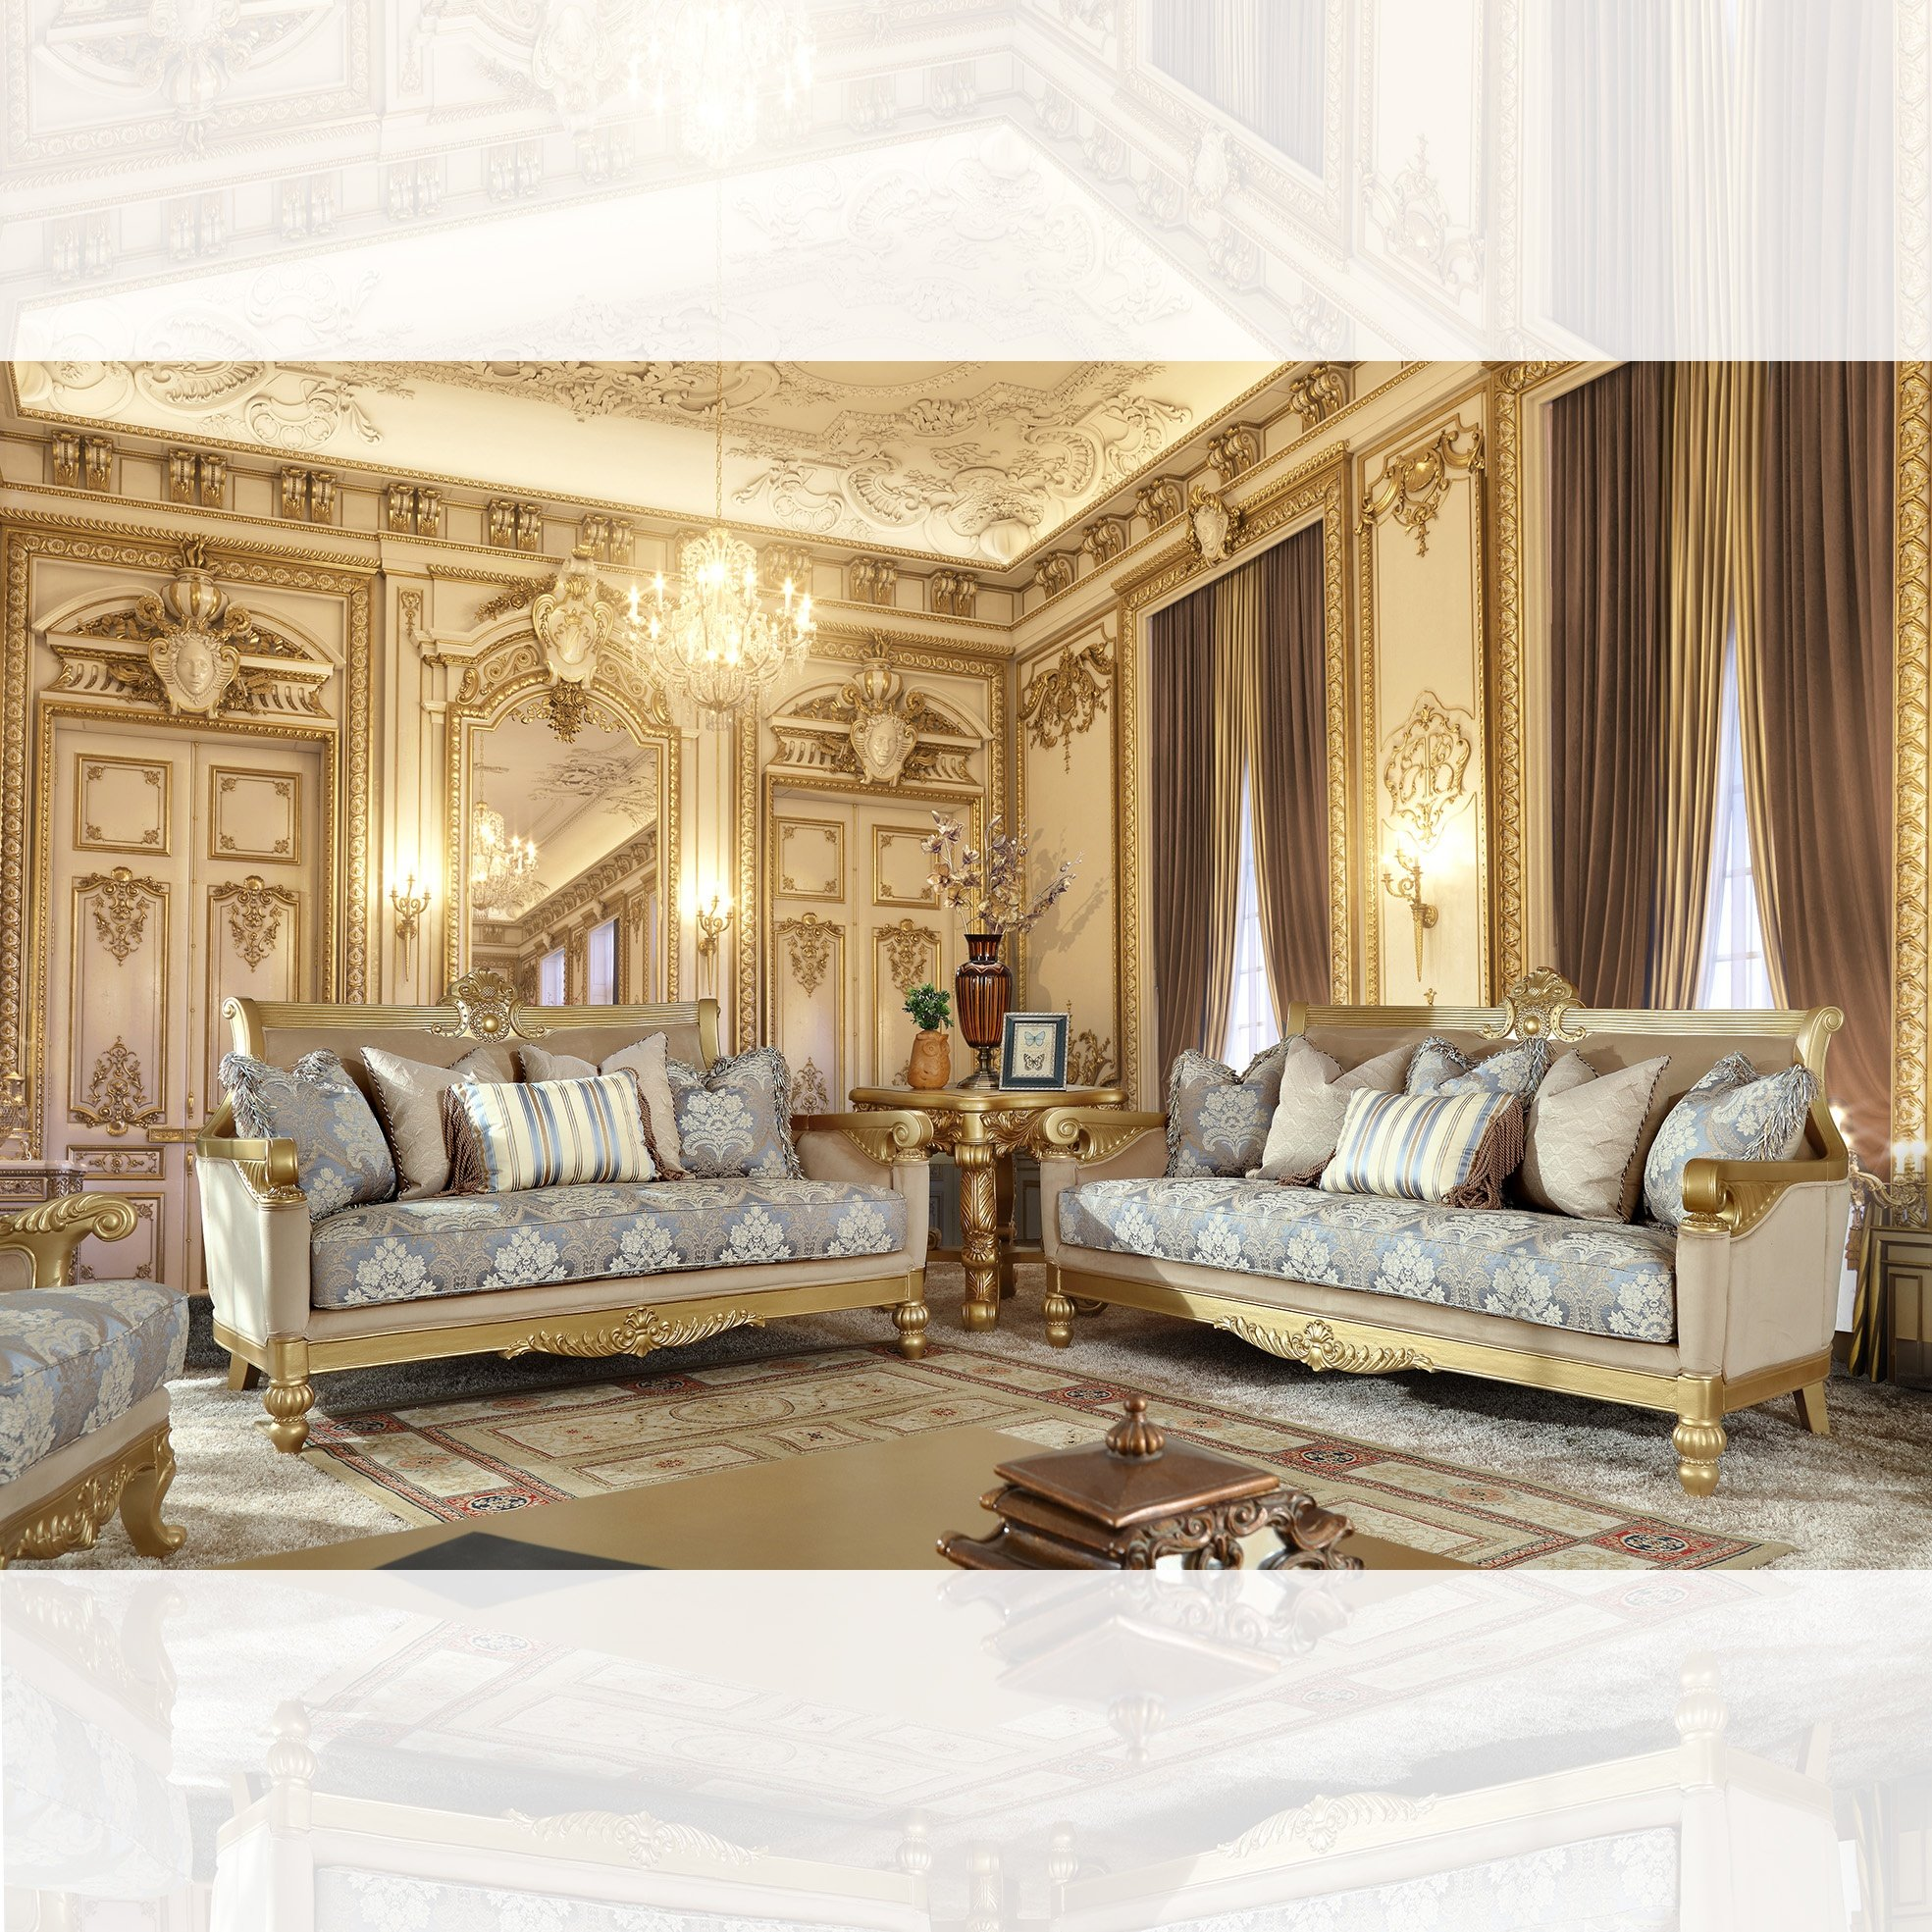 Traditional Living Room Set 3 PCS in Yellow Fabric Traditional Style Homey Design HD-2666